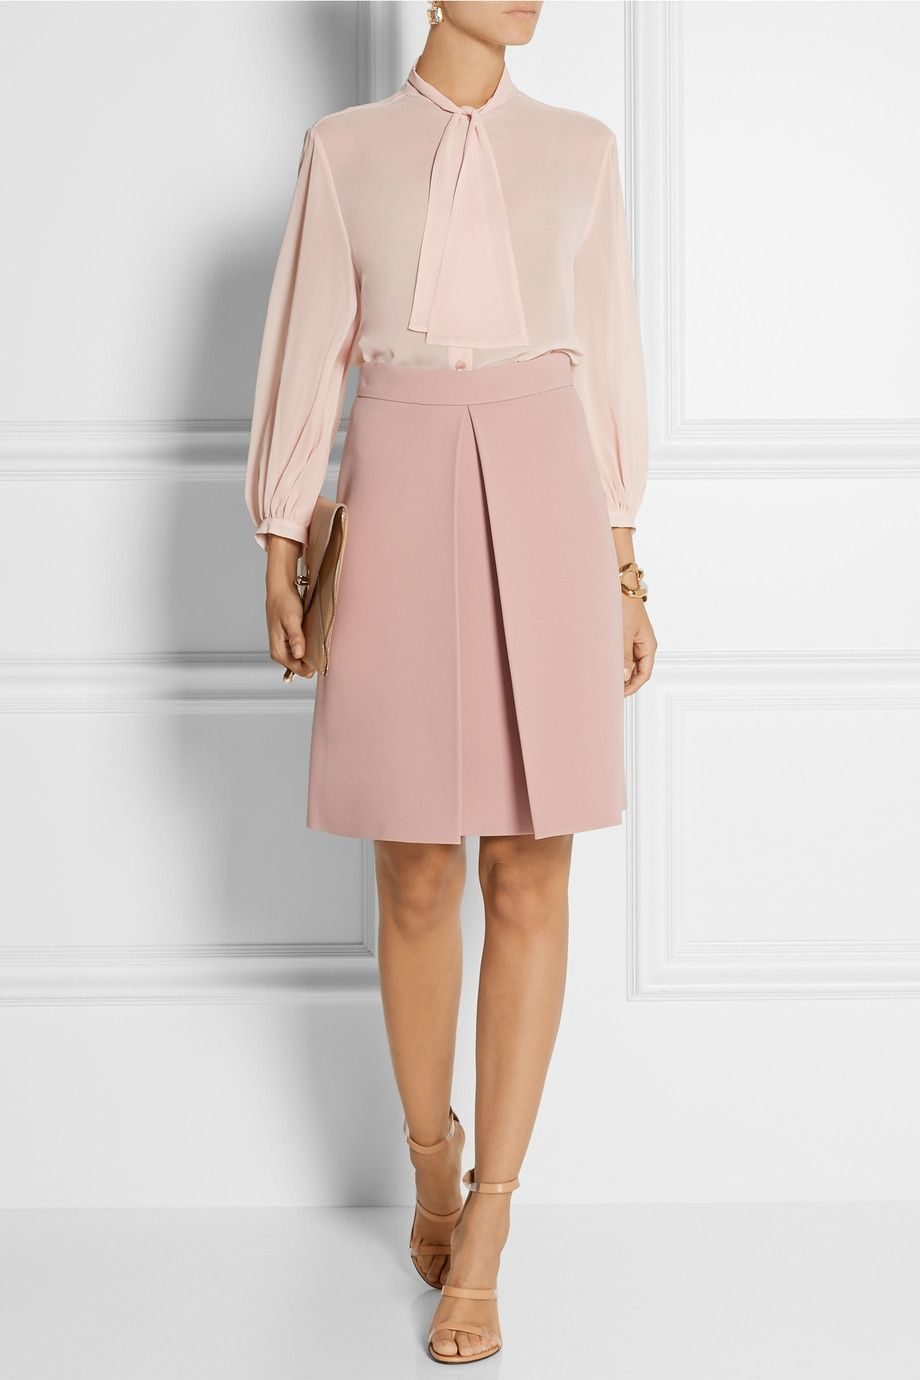 Gucci | Pleated crepe skirt | NET-A-PORTER.COM | Outfits I like or ...